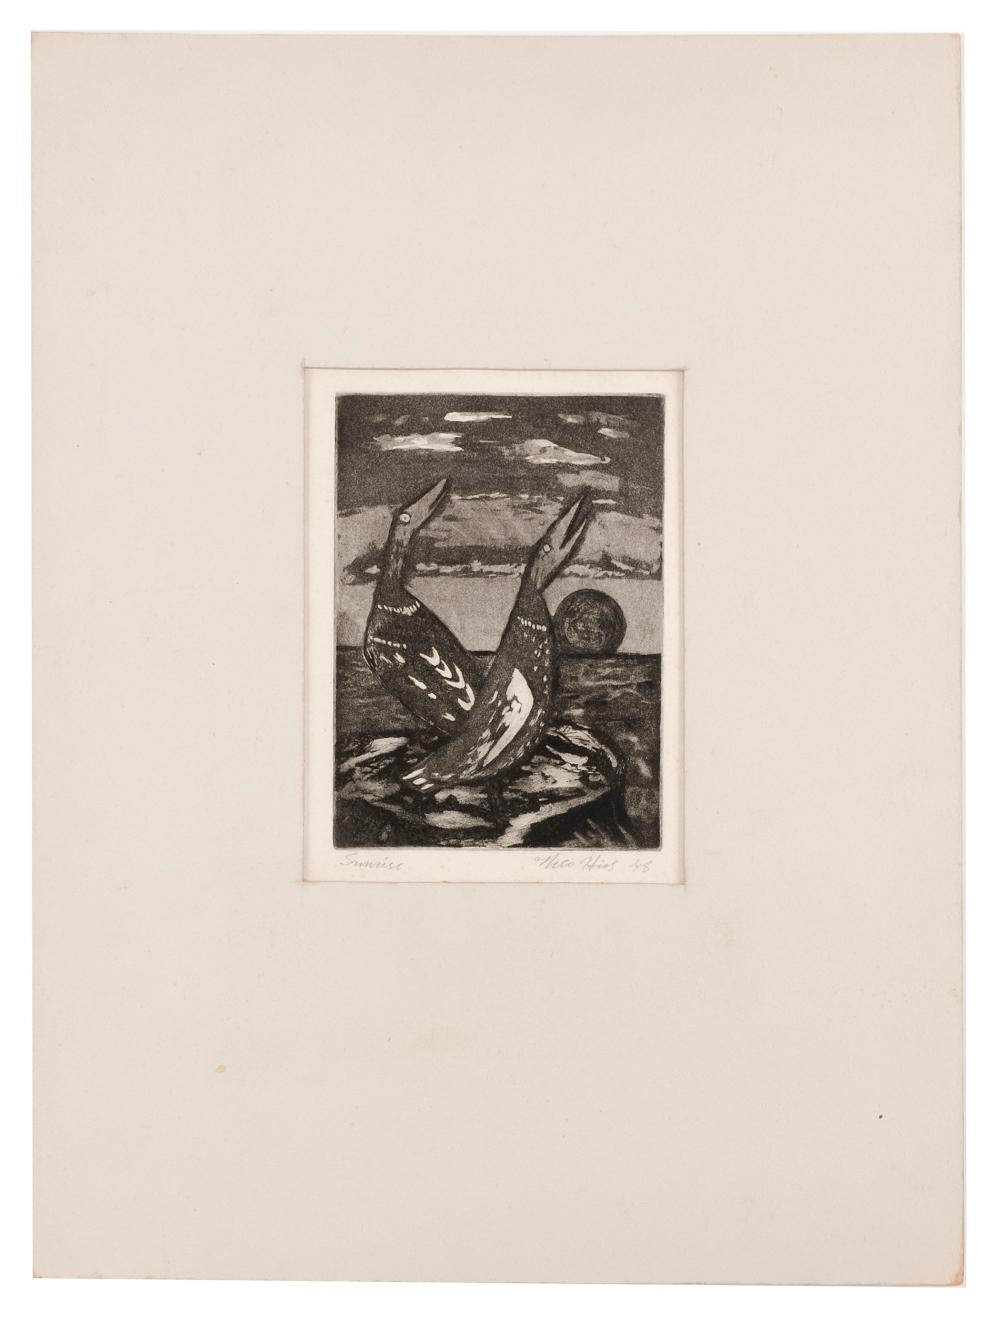 """THEO HIOS, New York/Greece, 1910-1998, """"Sunrise""""., Aquatint on paper, plate size 7"""" x 5"""". Sheet size 8"""" x 6"""". Matted."""